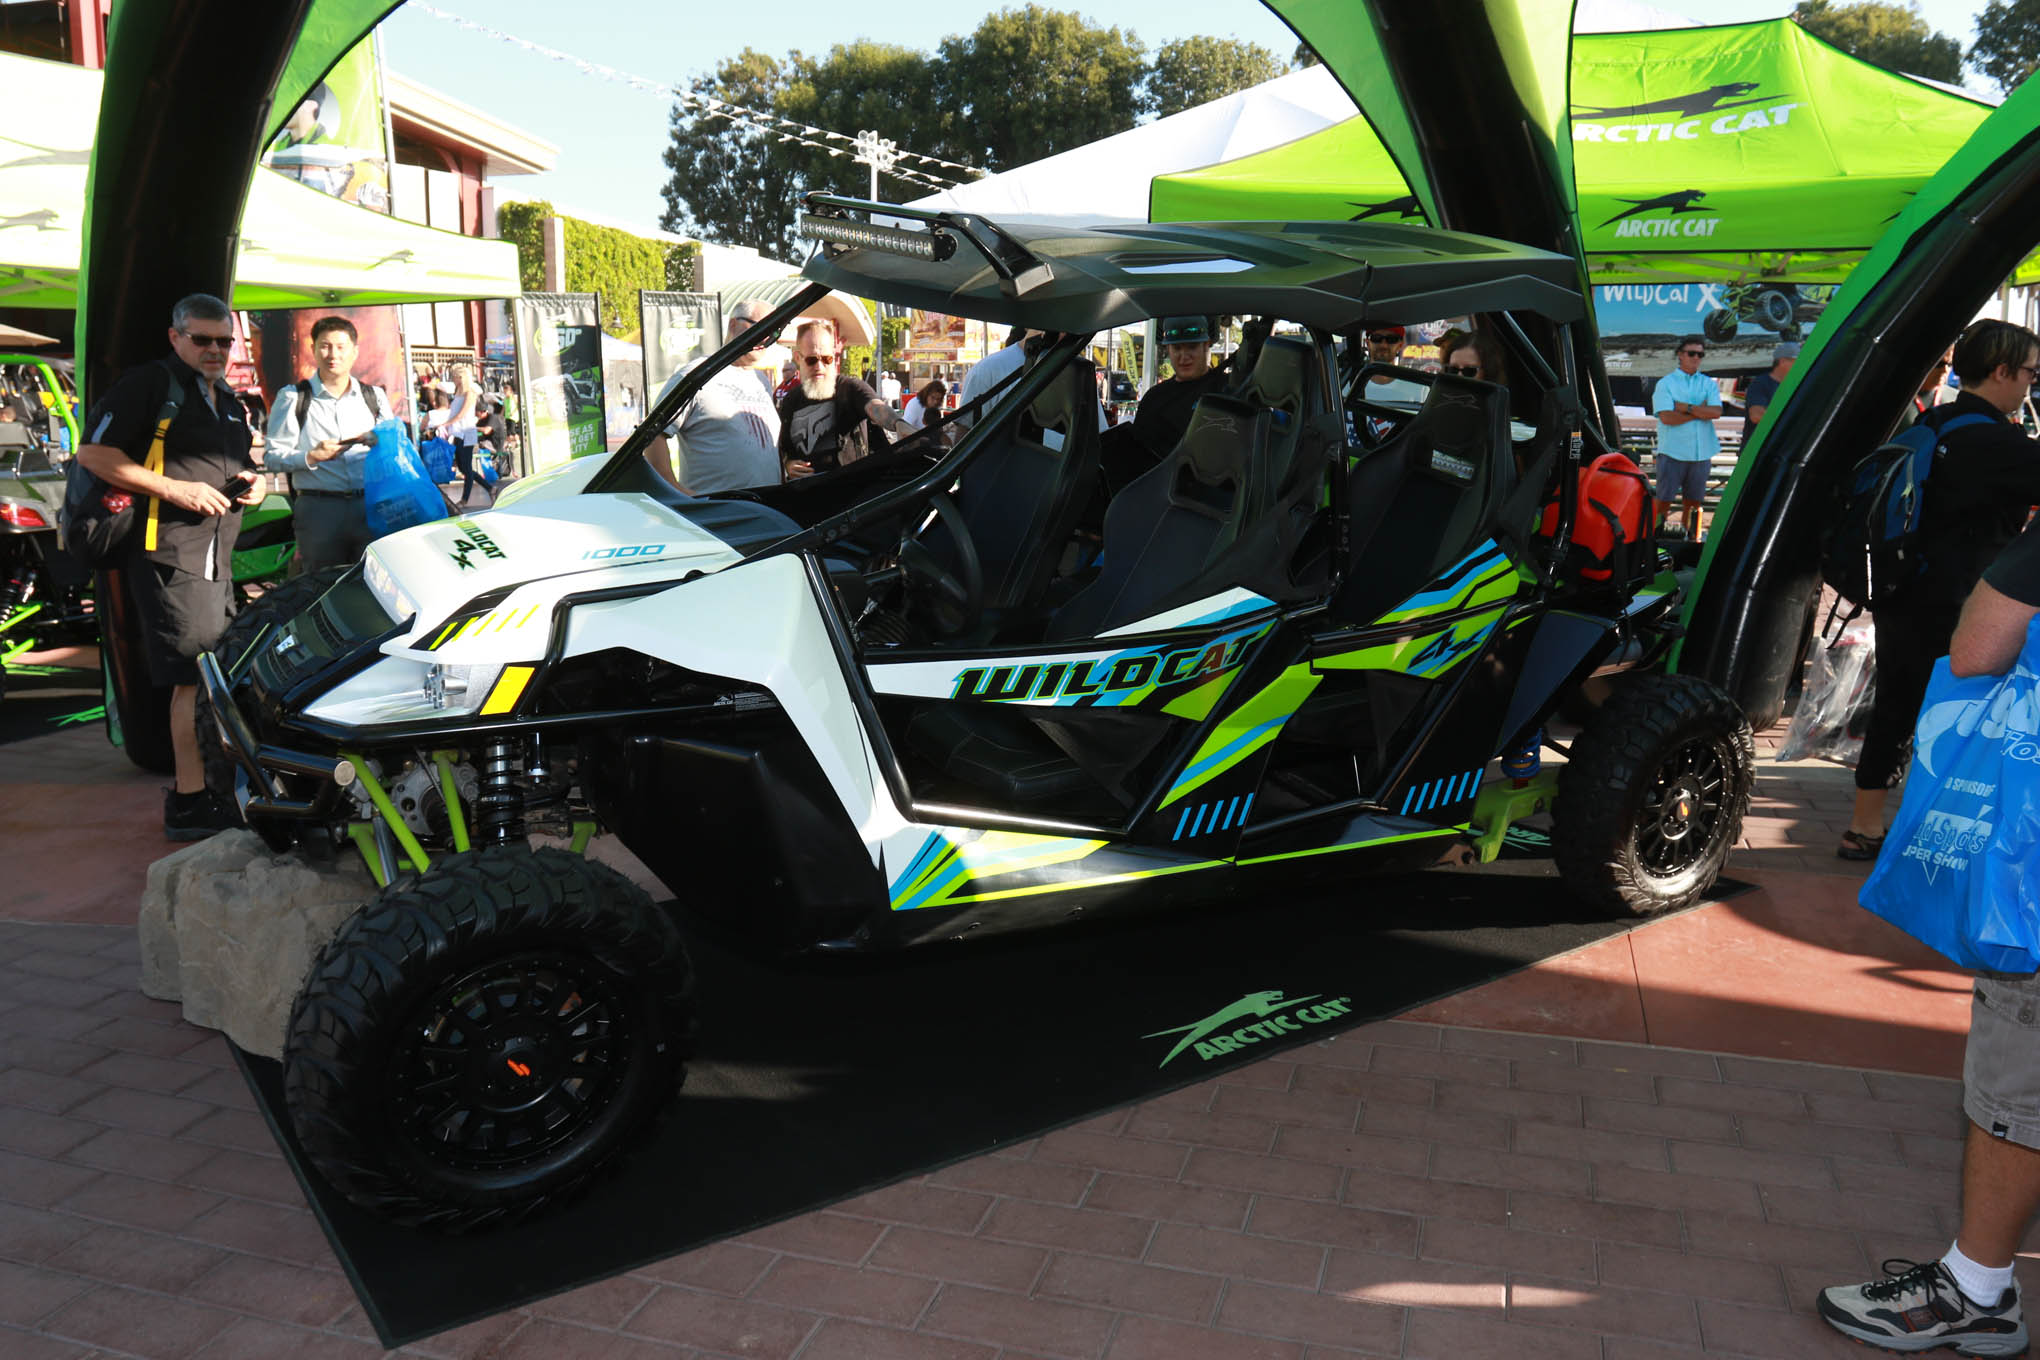 Arctic Cat revealed their new 4-seater 1000cc Wildcat 4X, and we can't wait to get one out in the dirt.